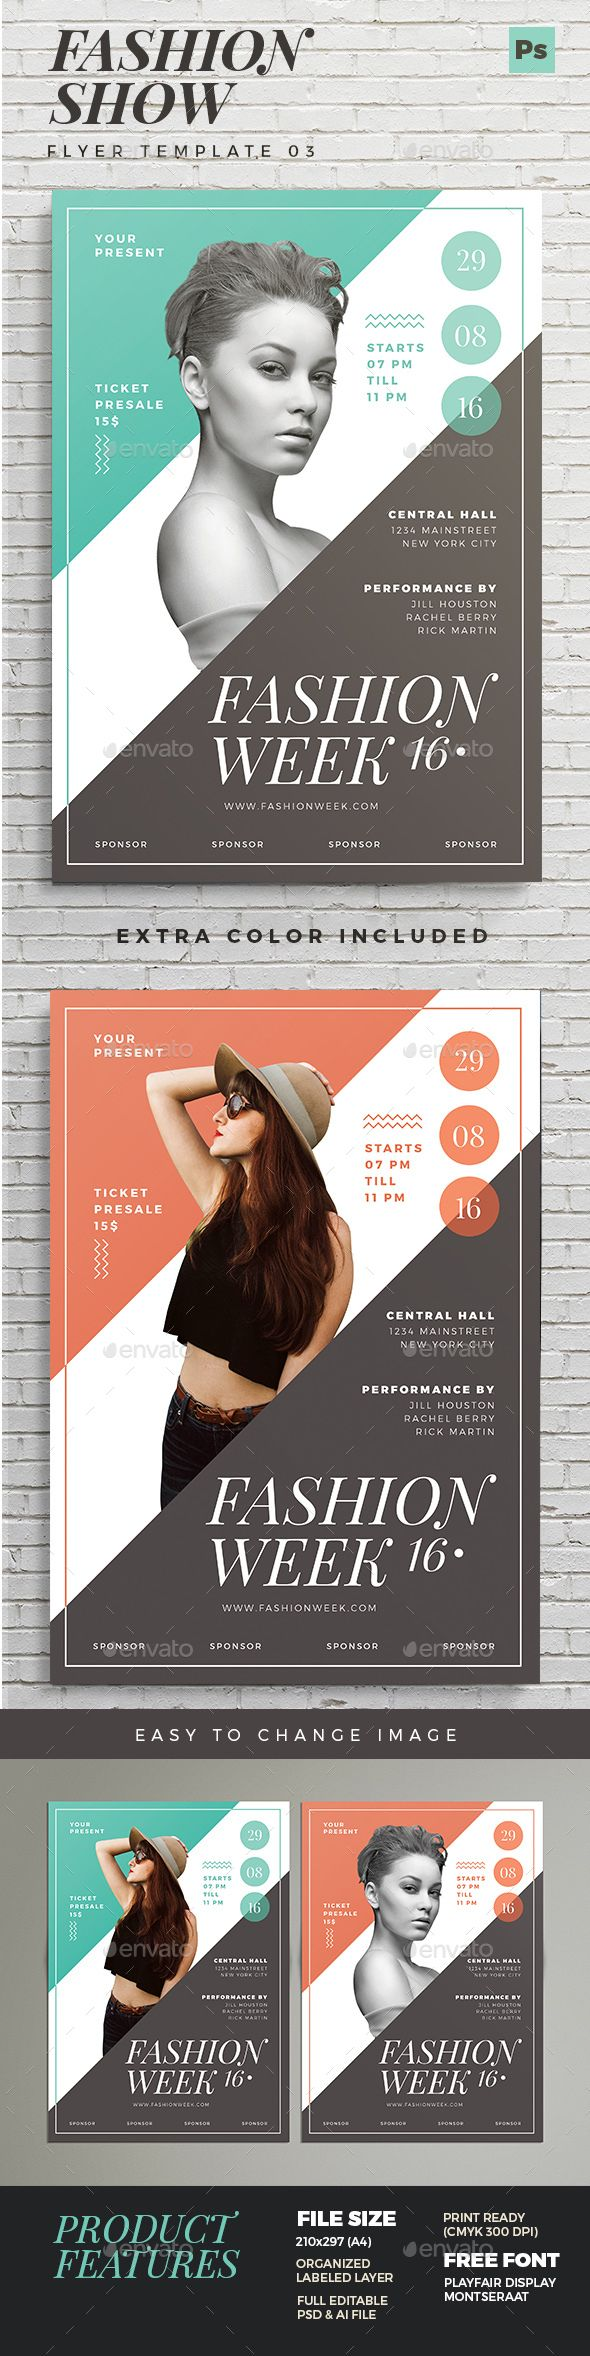 Fashion Show Flyer 03 — Photoshop PSD #fashion flyer #show • Available here → https://graphicriver.net/item/fashion-show-flyer-03/16703317?ref=pxcr